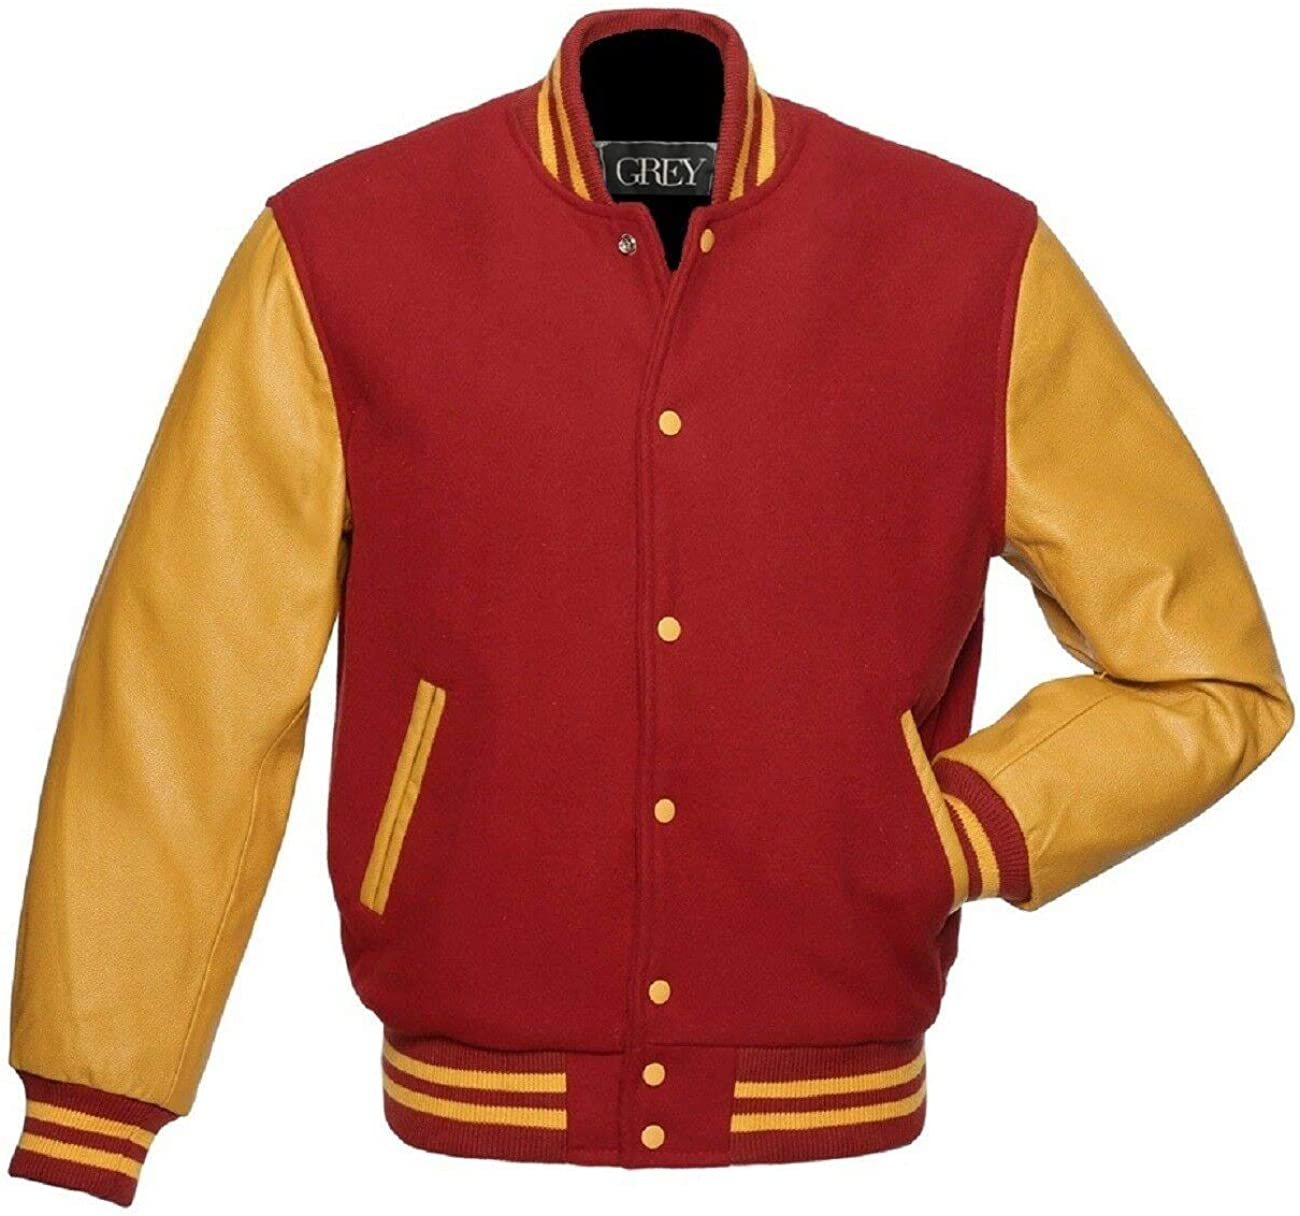 GREY Brand Varsity Jacket, Wool Body with Leather Arms Letterman Baseball Unique & Stylish (7XL) (M, Red Yellow-Gold)